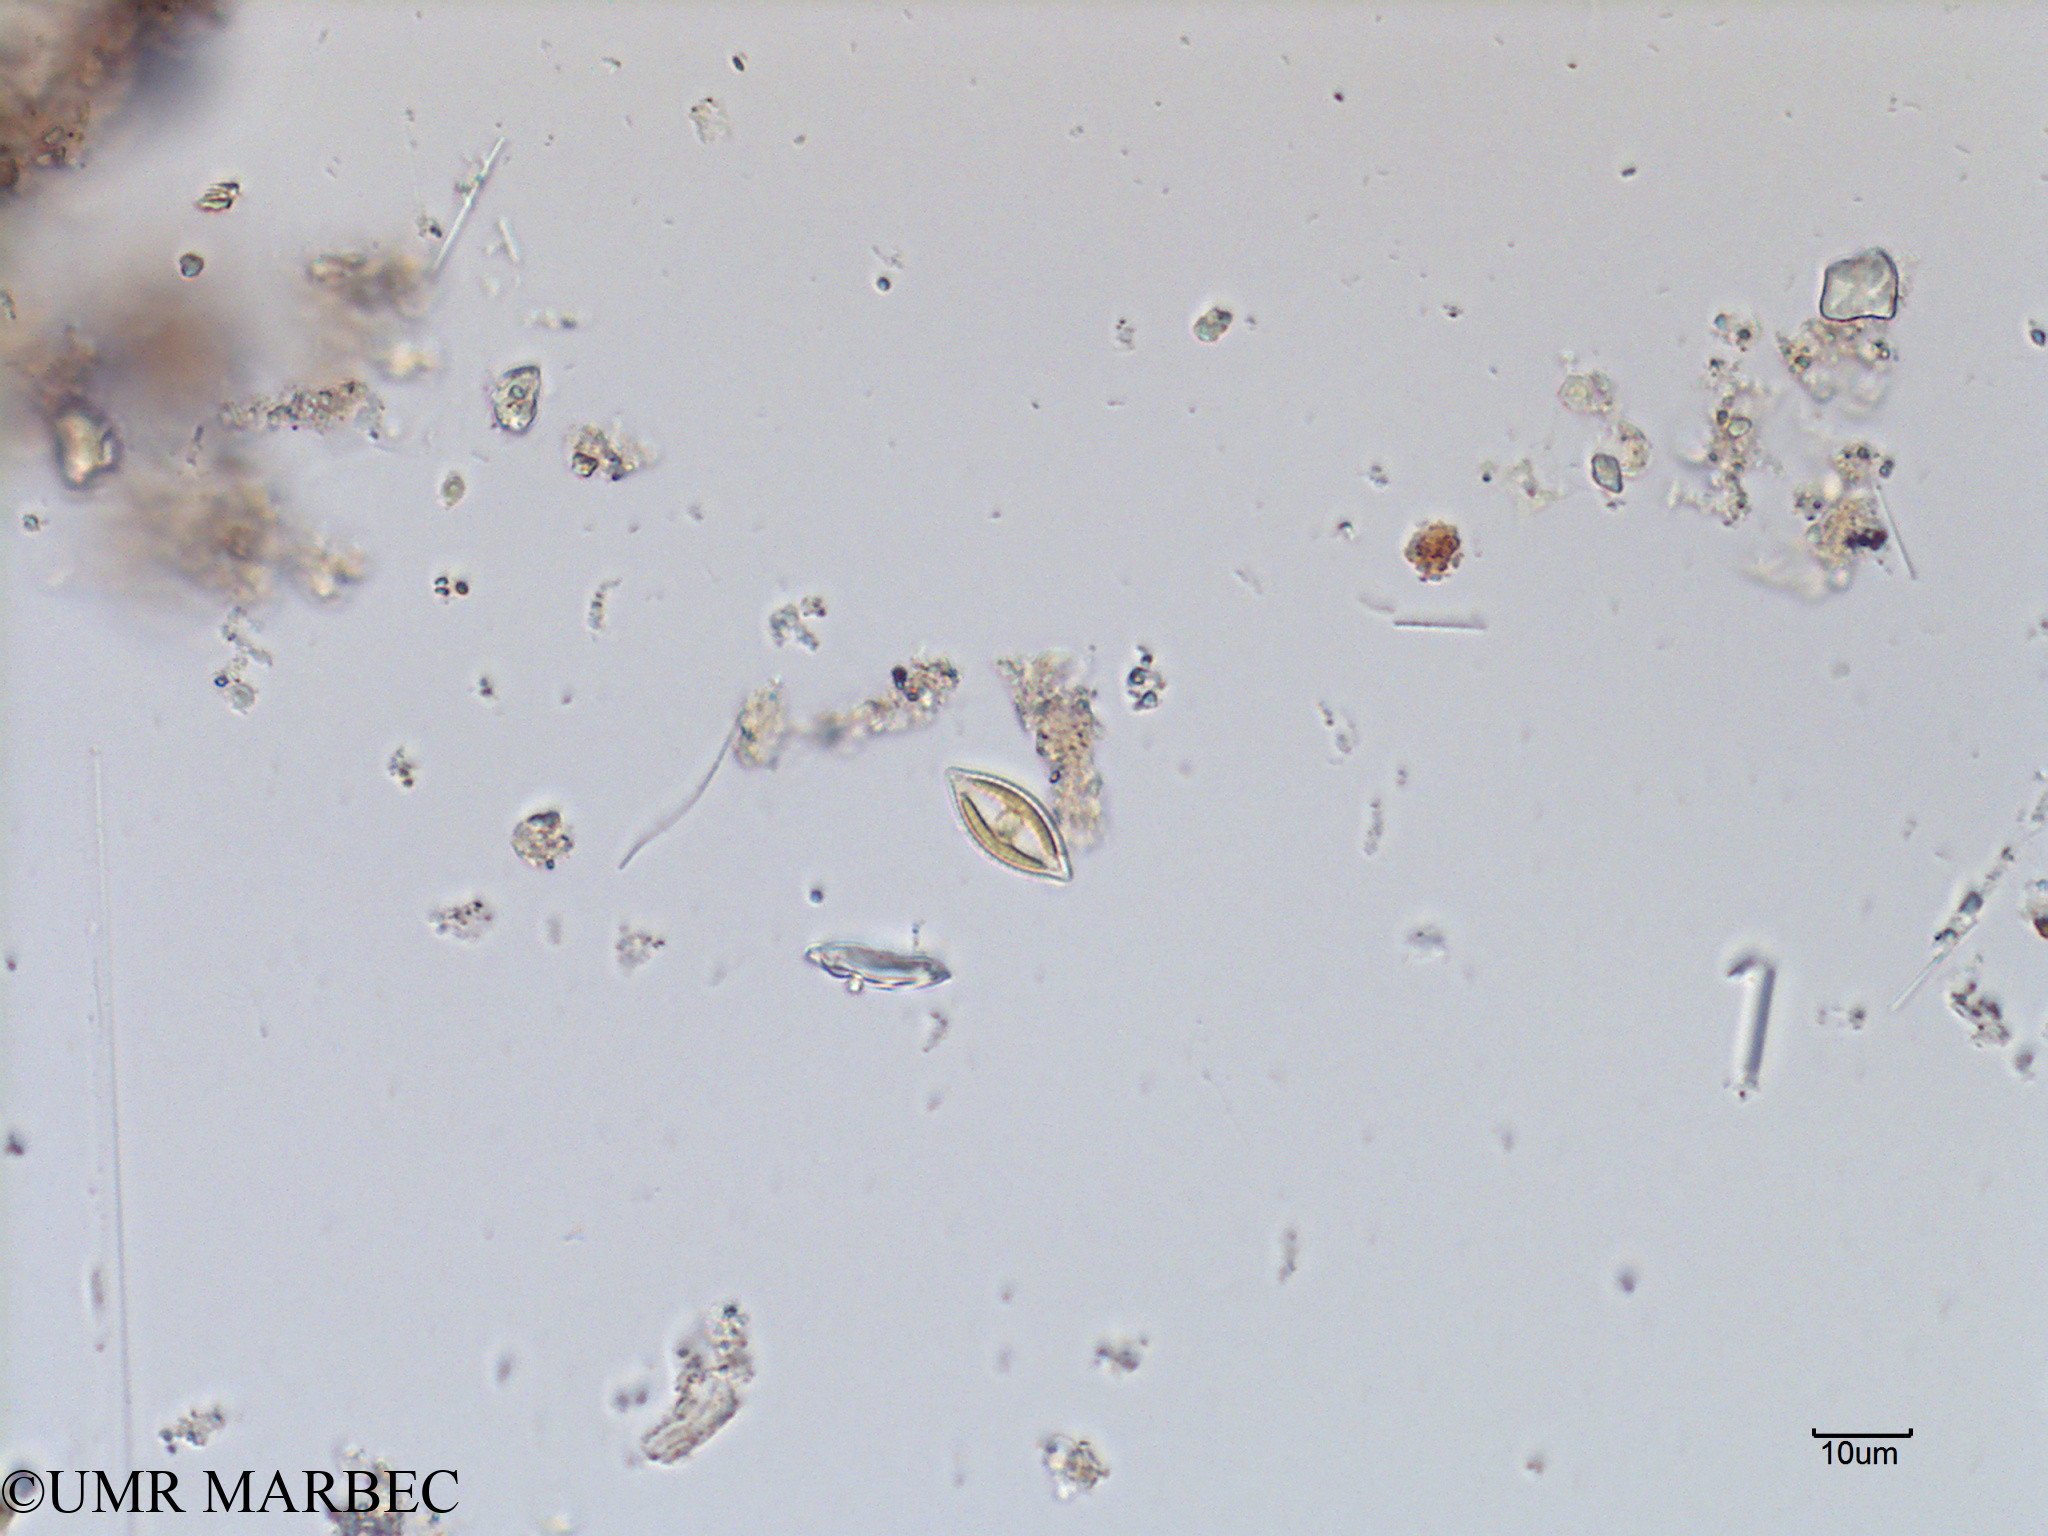 phyto/Scattered_Islands/mayotte_lagoon/SIREME May 2016/Navicula sp15 (MAY4_pennee petite b-2).tif(copy).jpg